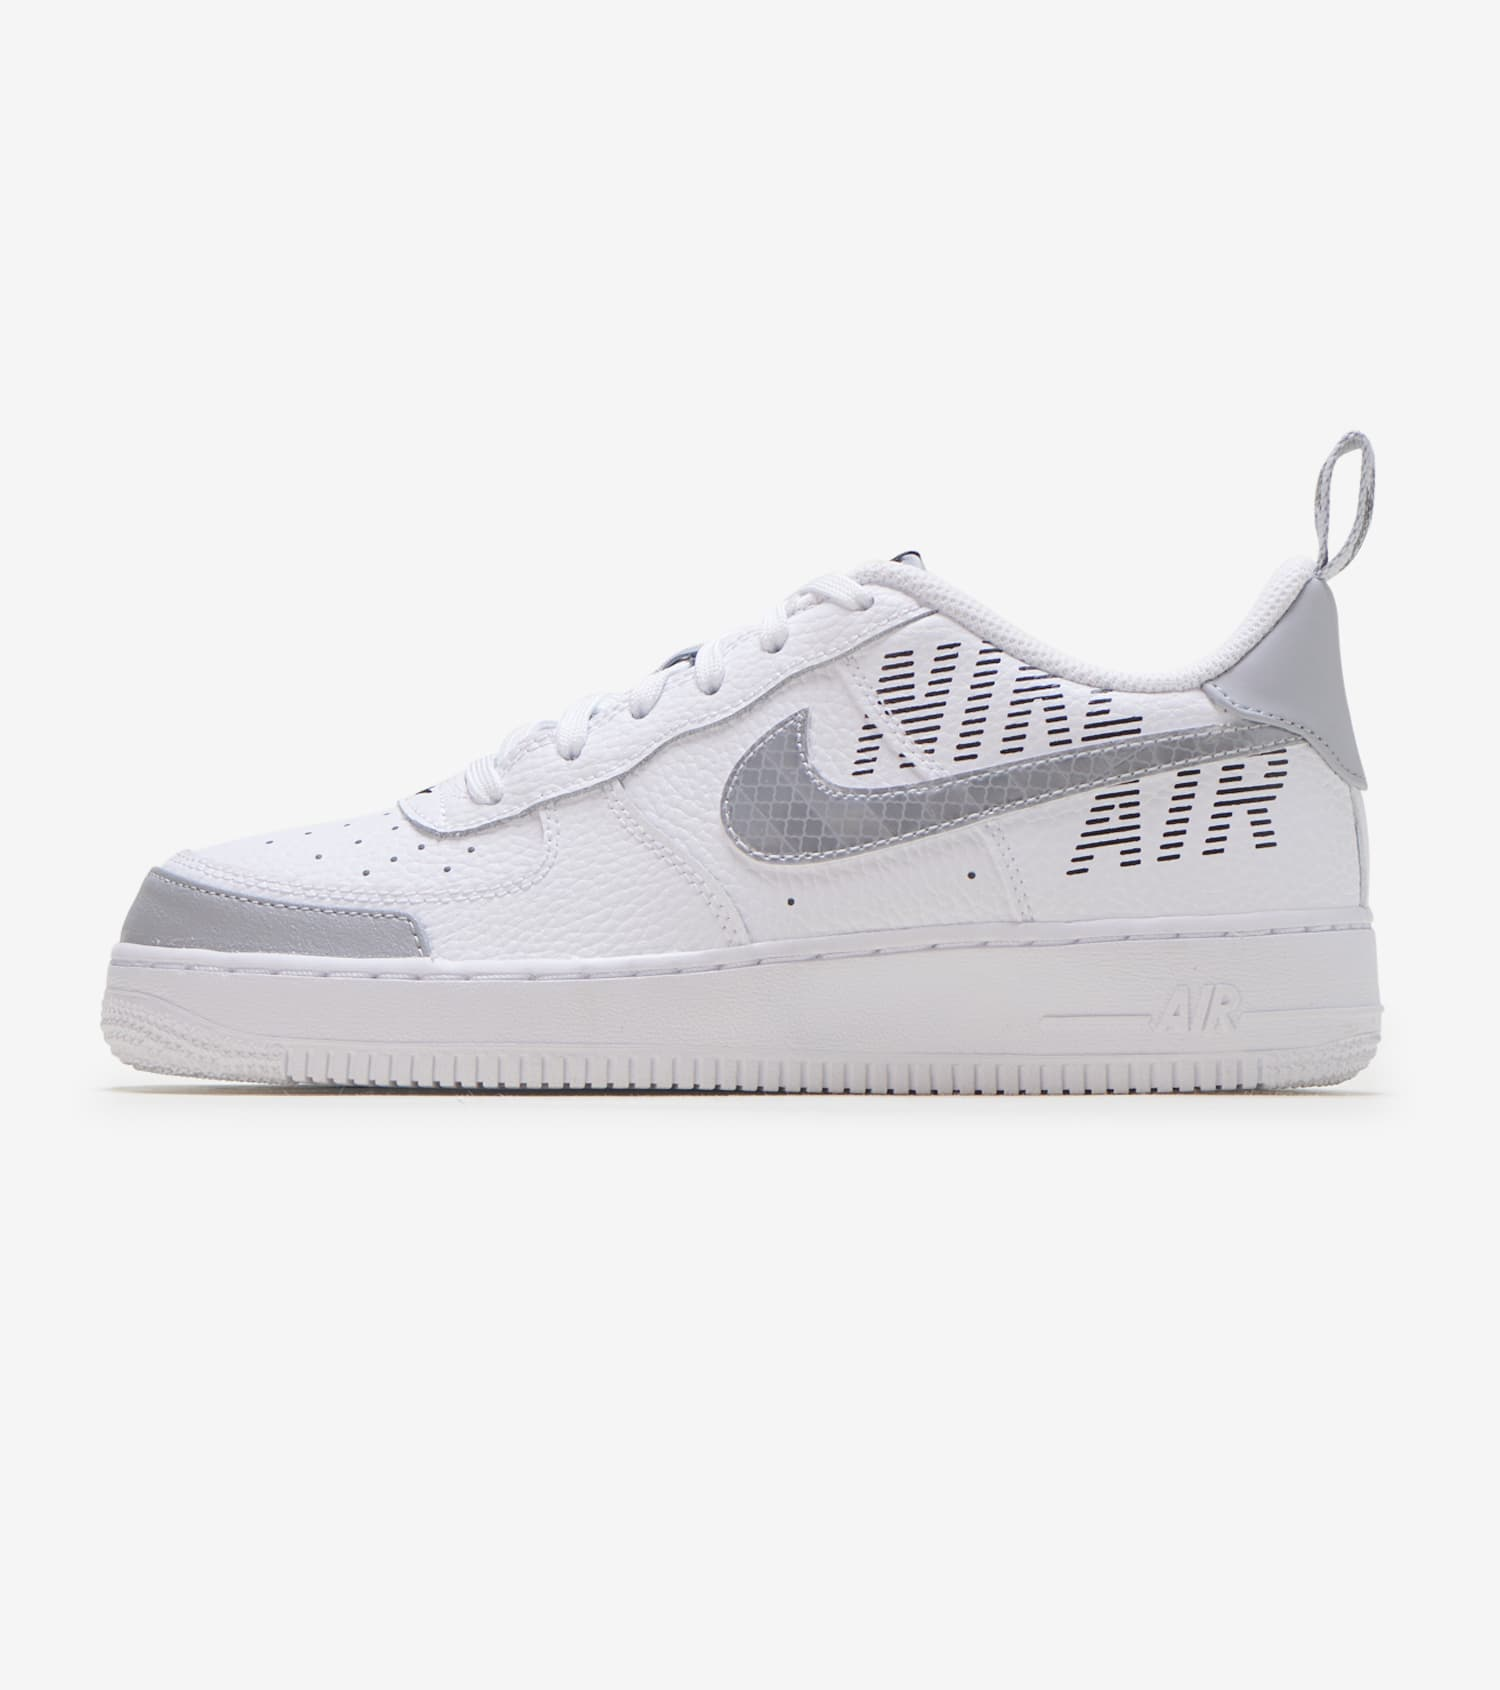 nike air force 07 utility white off 53%